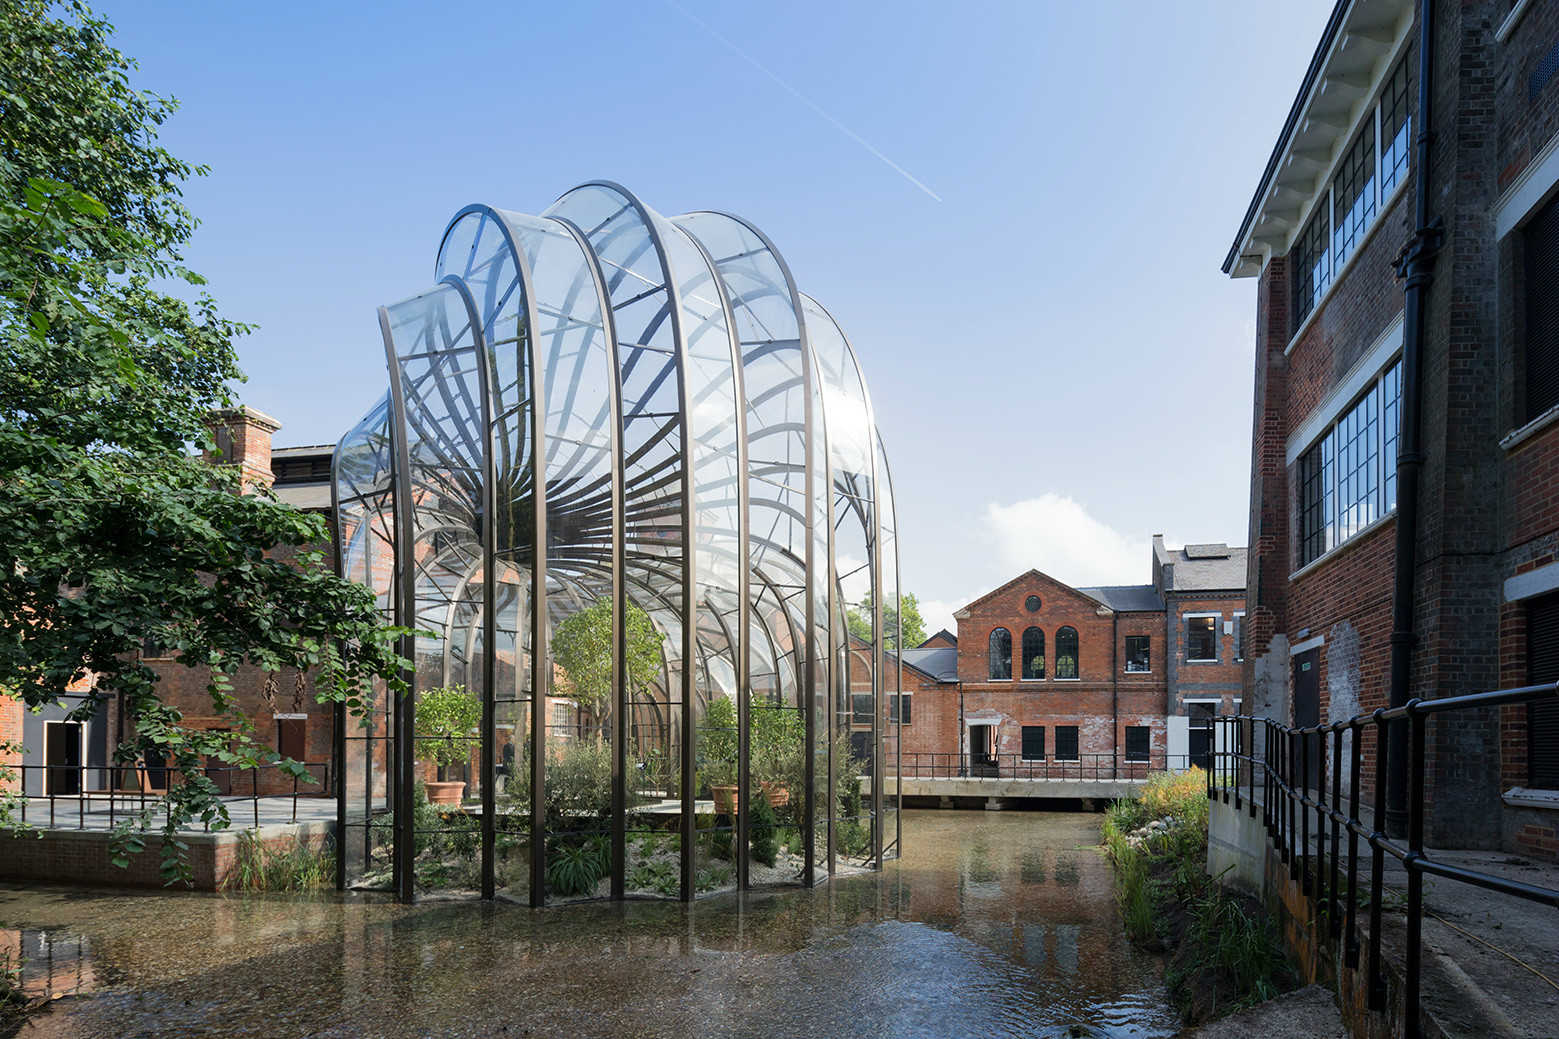 IGS Magazine-Bombay-Sapphire-Distillery-Heatherwick-Studio-Architecture-projects-1